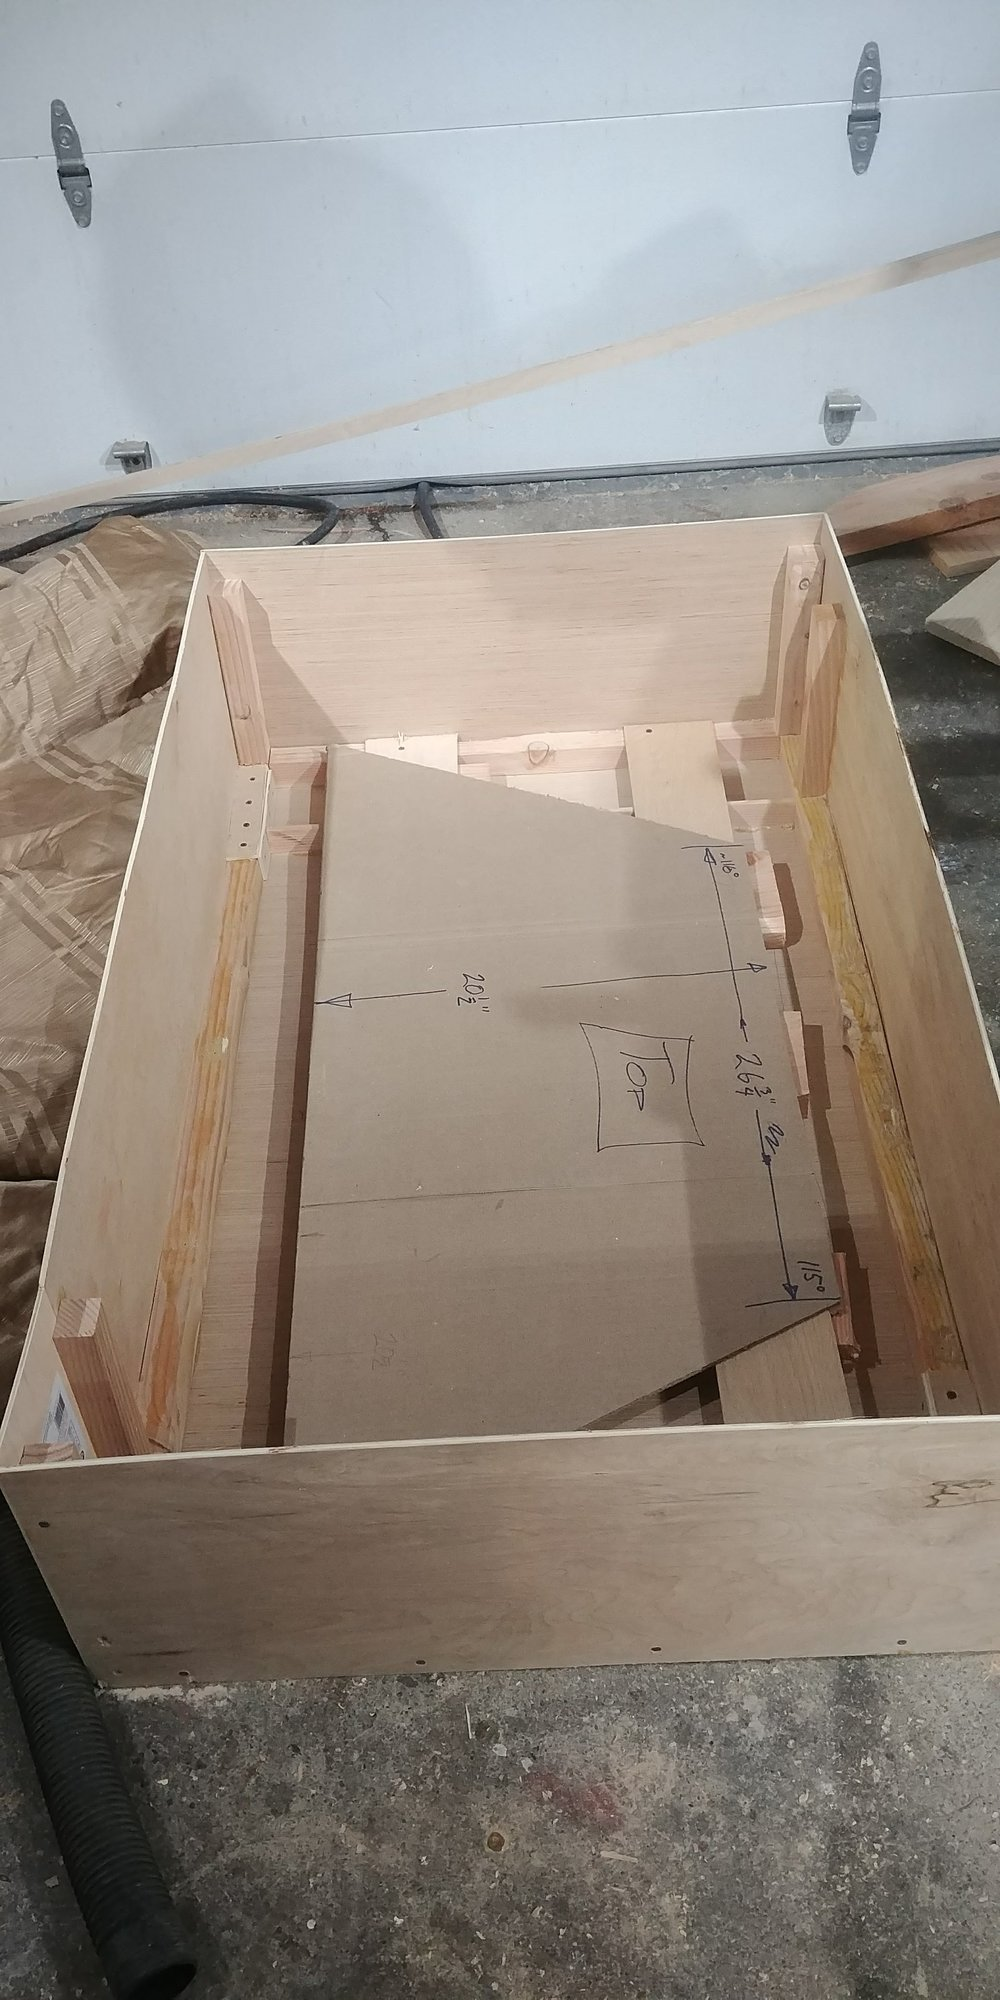 The crate, just big enough for the shelf and mirror, but just small enough to get through FedEx size (and weight) limitations